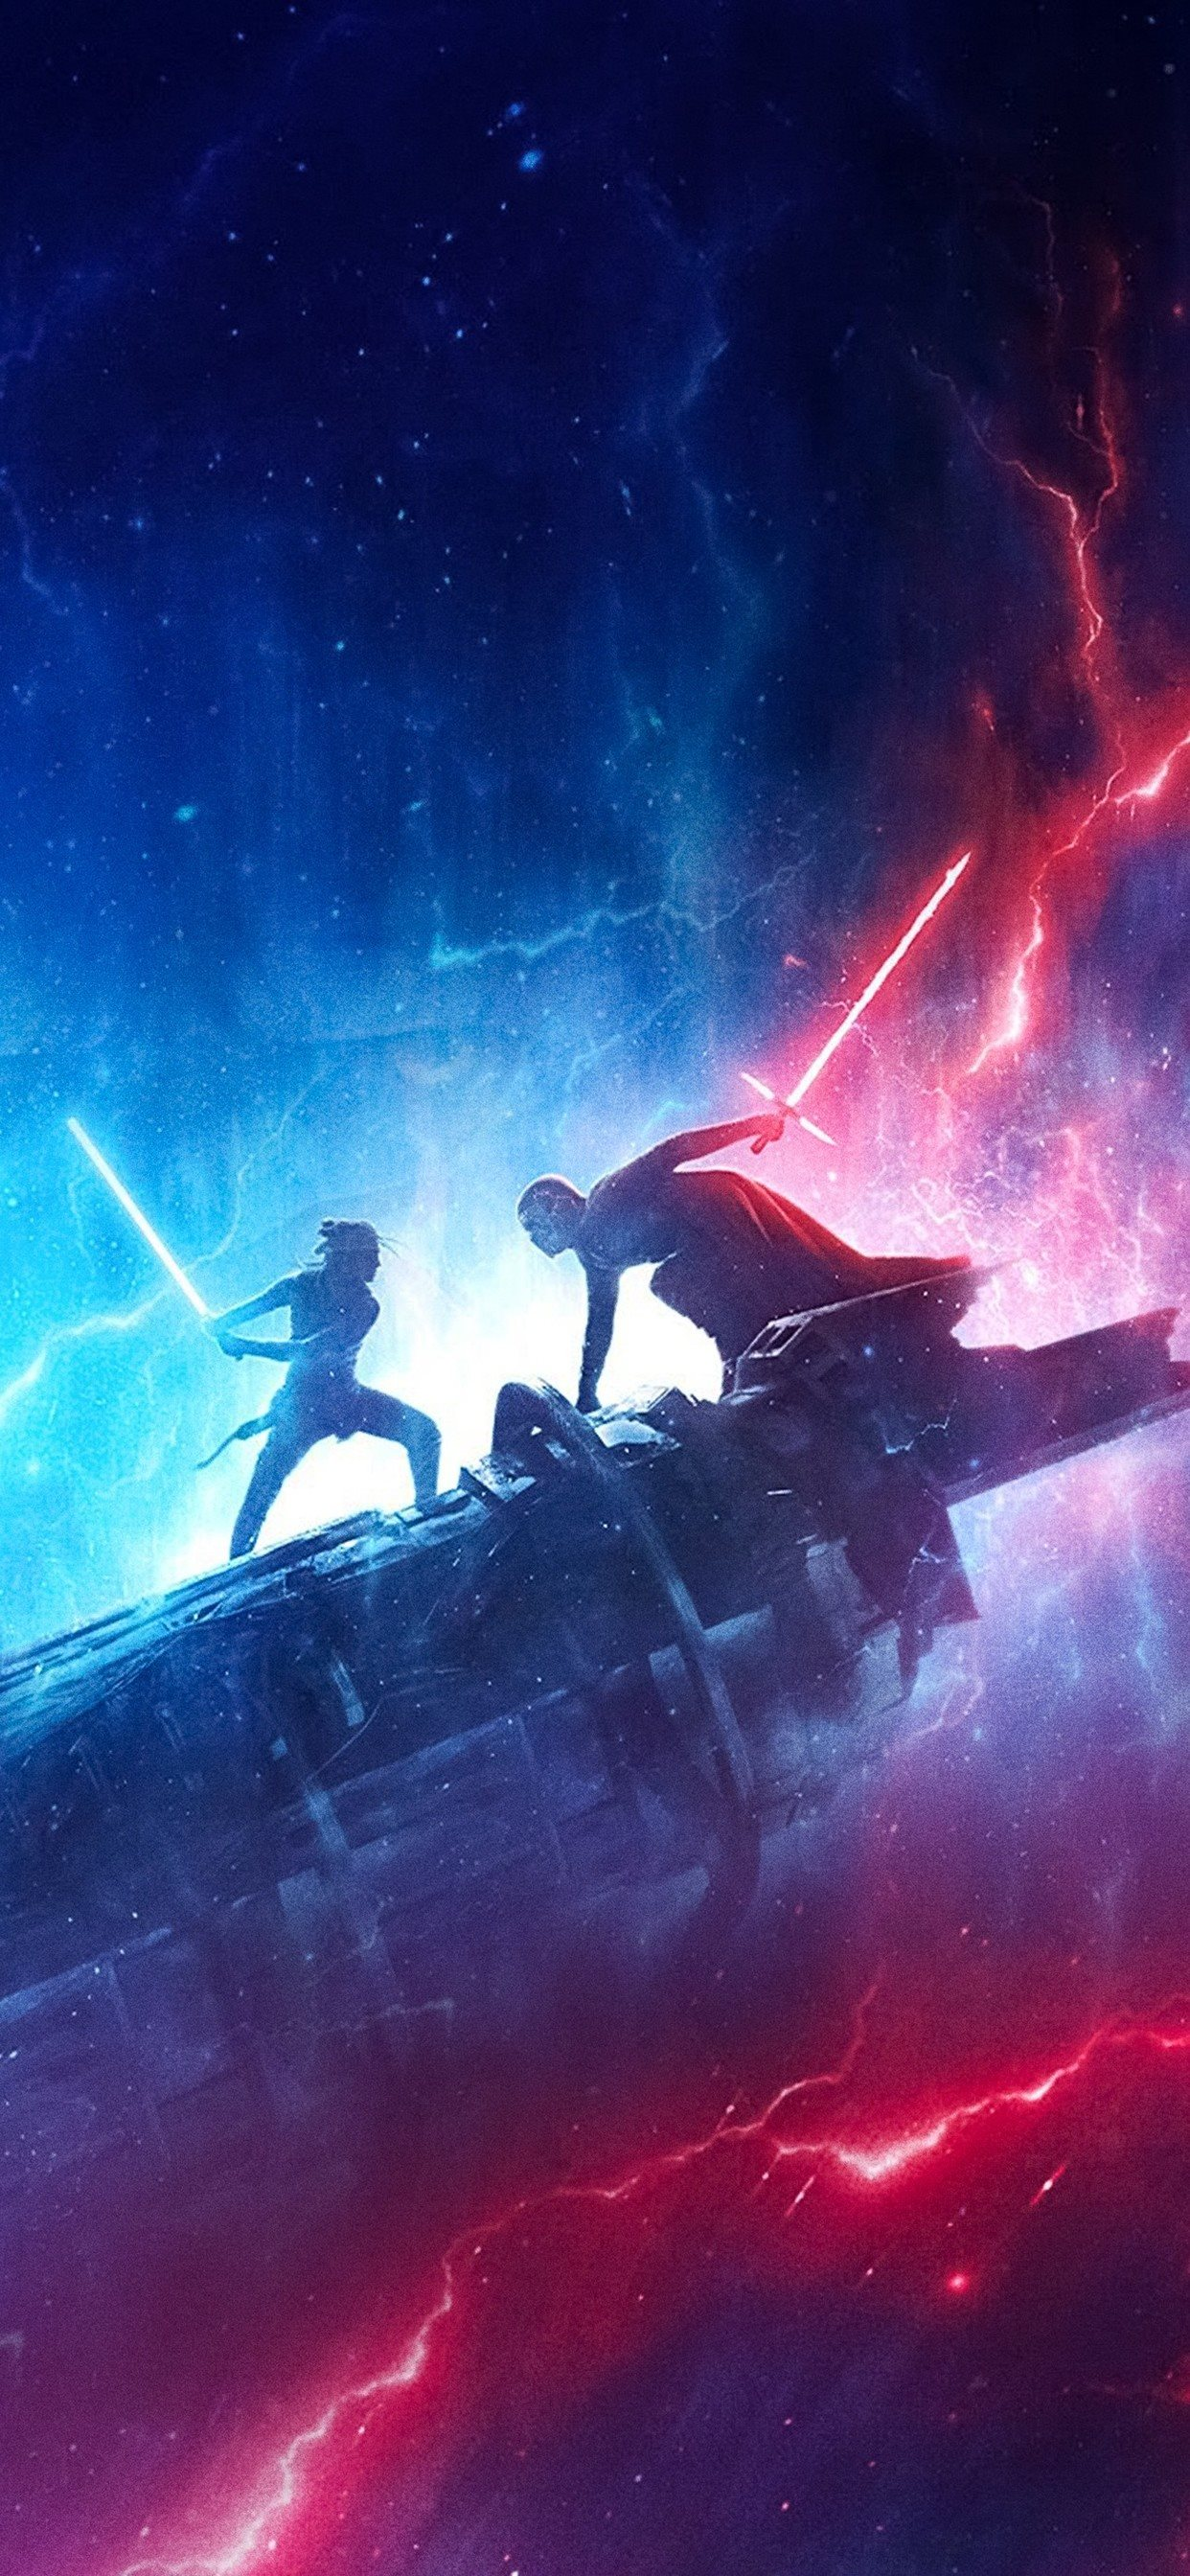 Star Wars The Rise Of Skywalker New 5k Iphone X Wallpapers Free Download